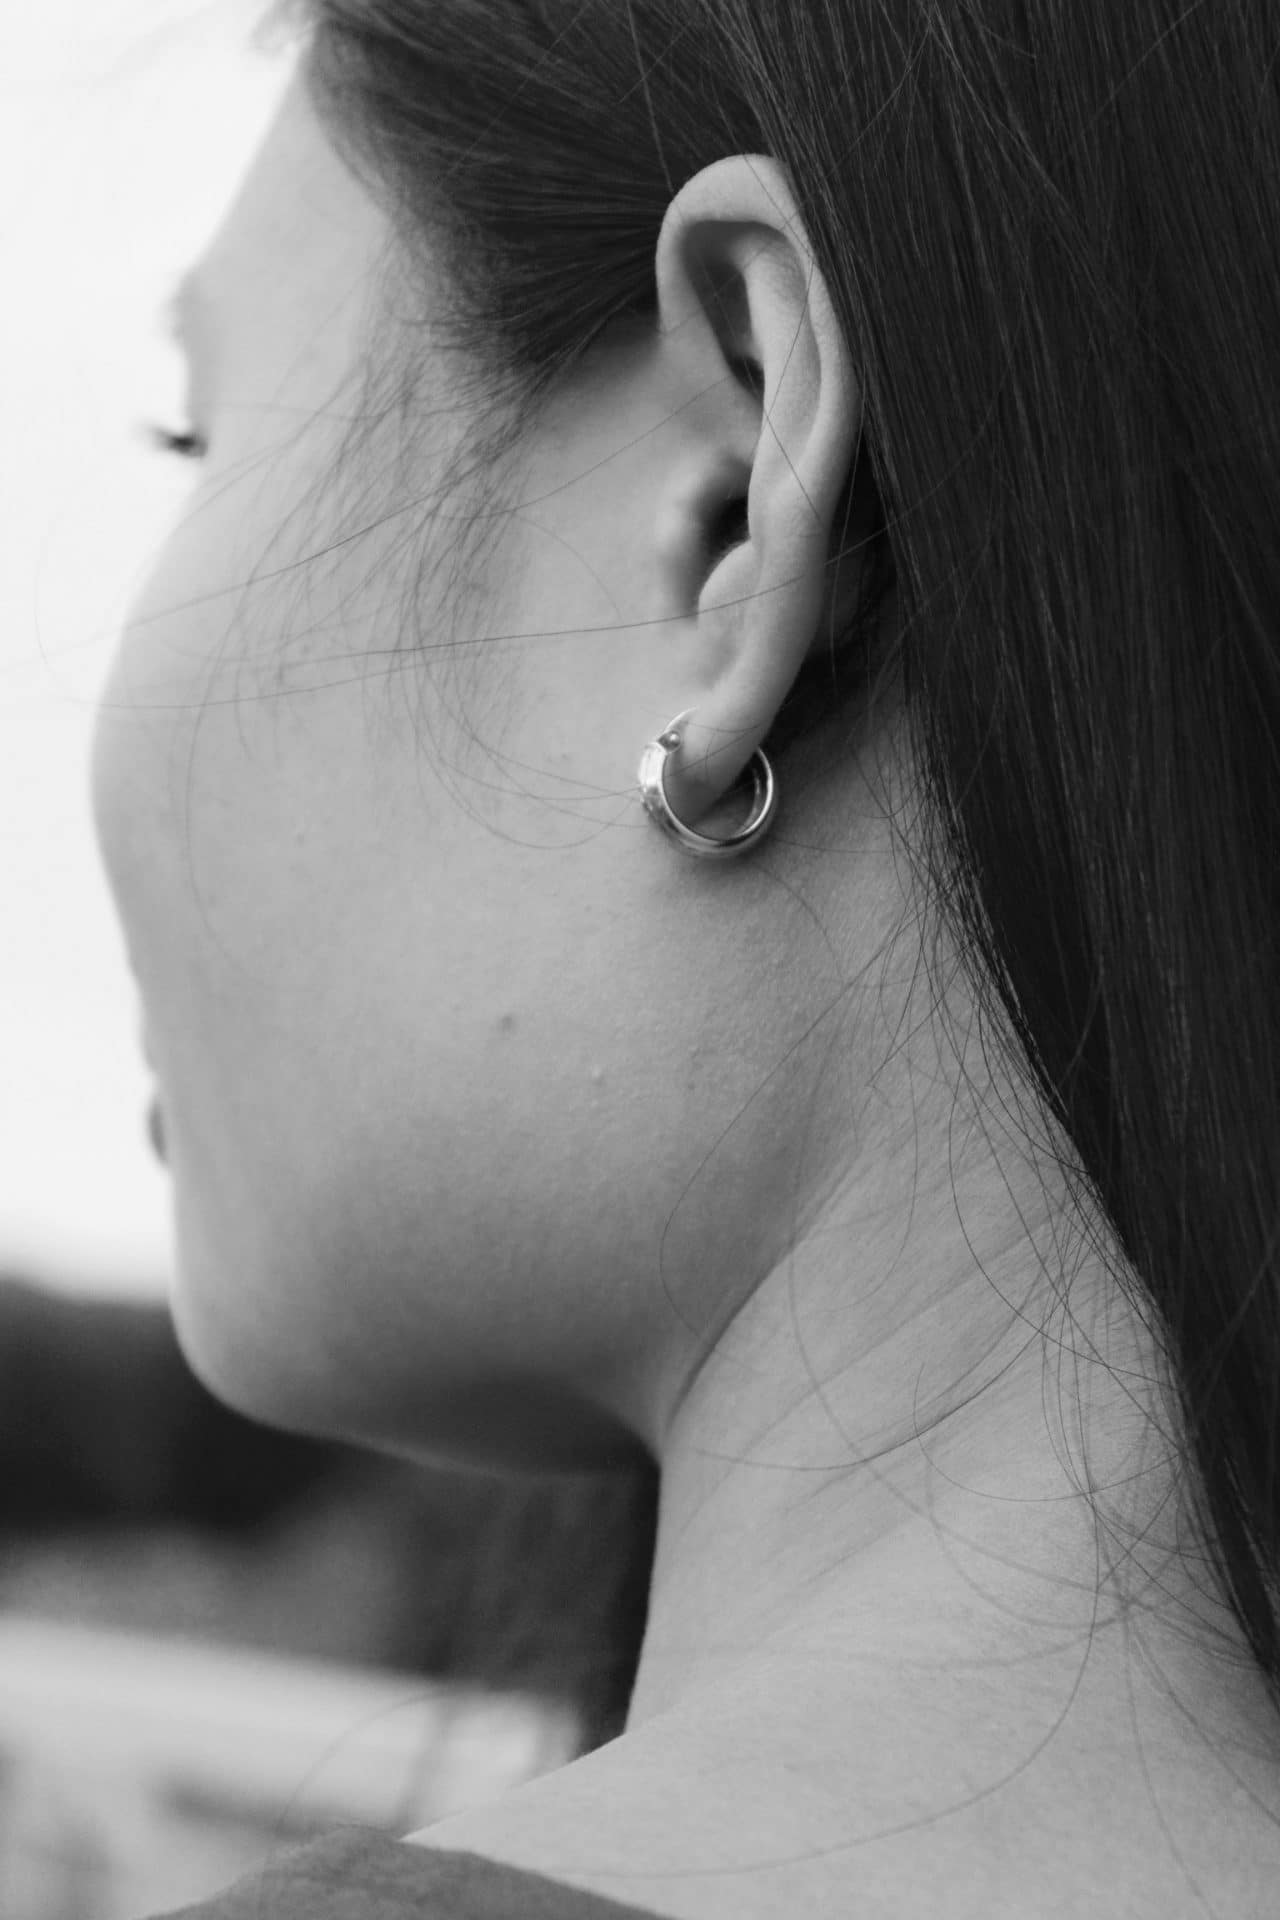 Close-up of a woman's earlobe